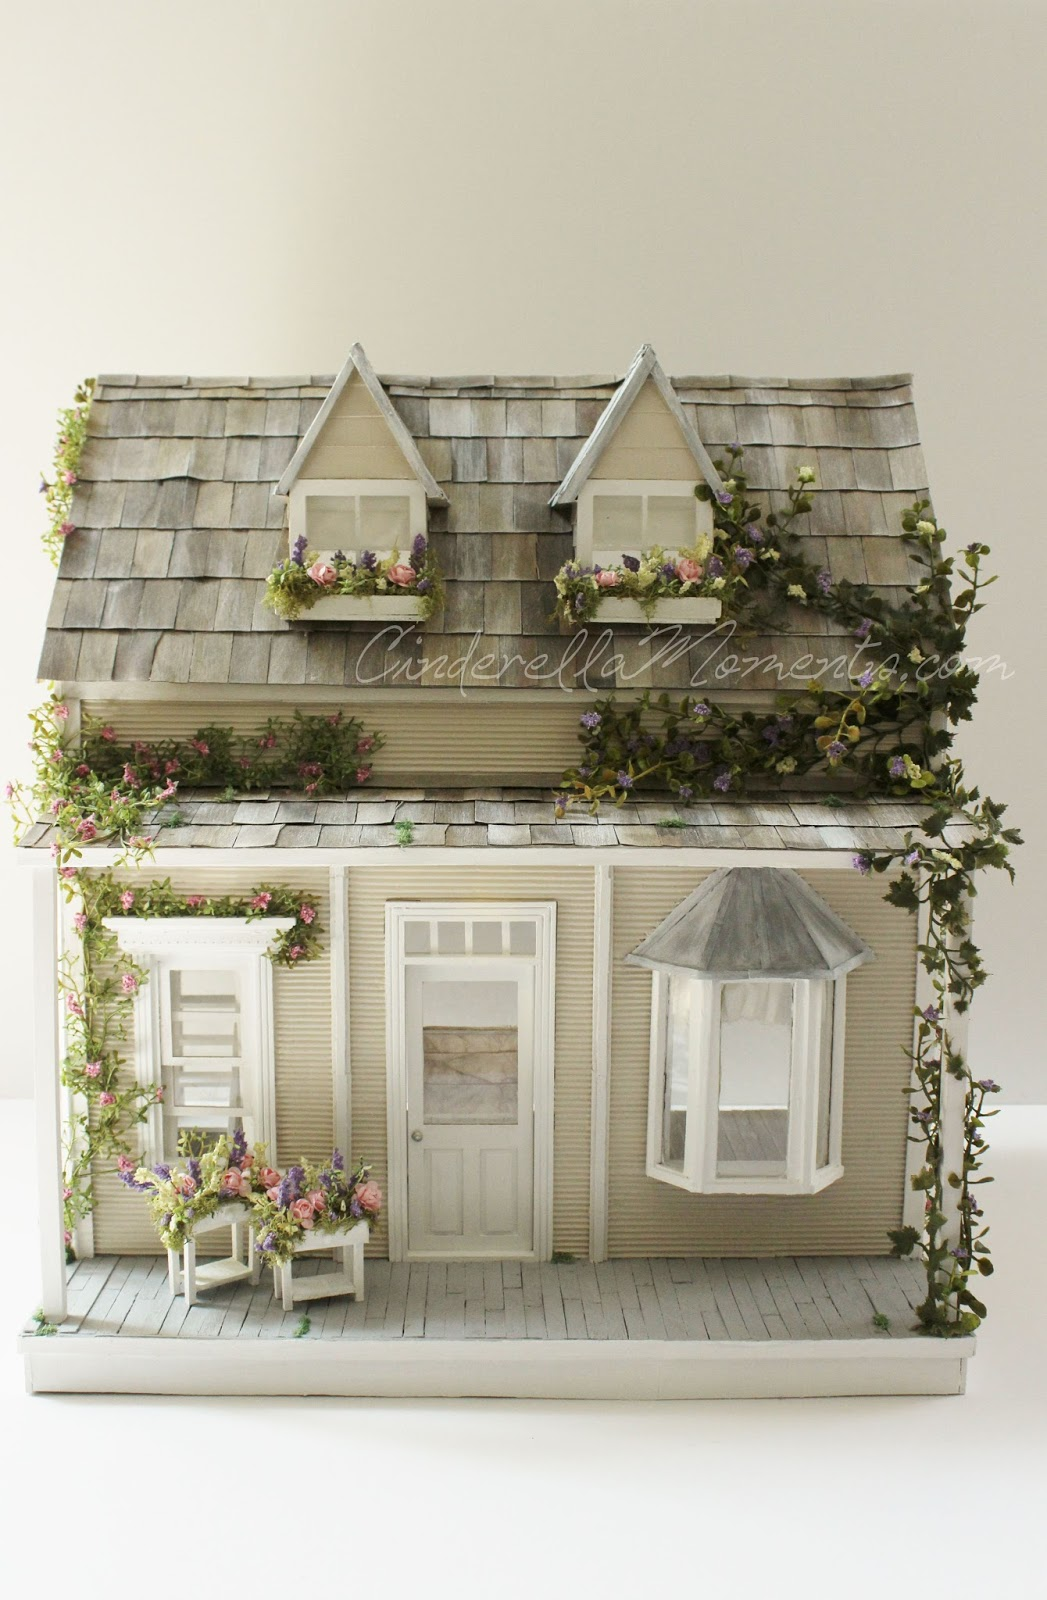 Cinderella Moments Spirited Away Cottage Dollhouse